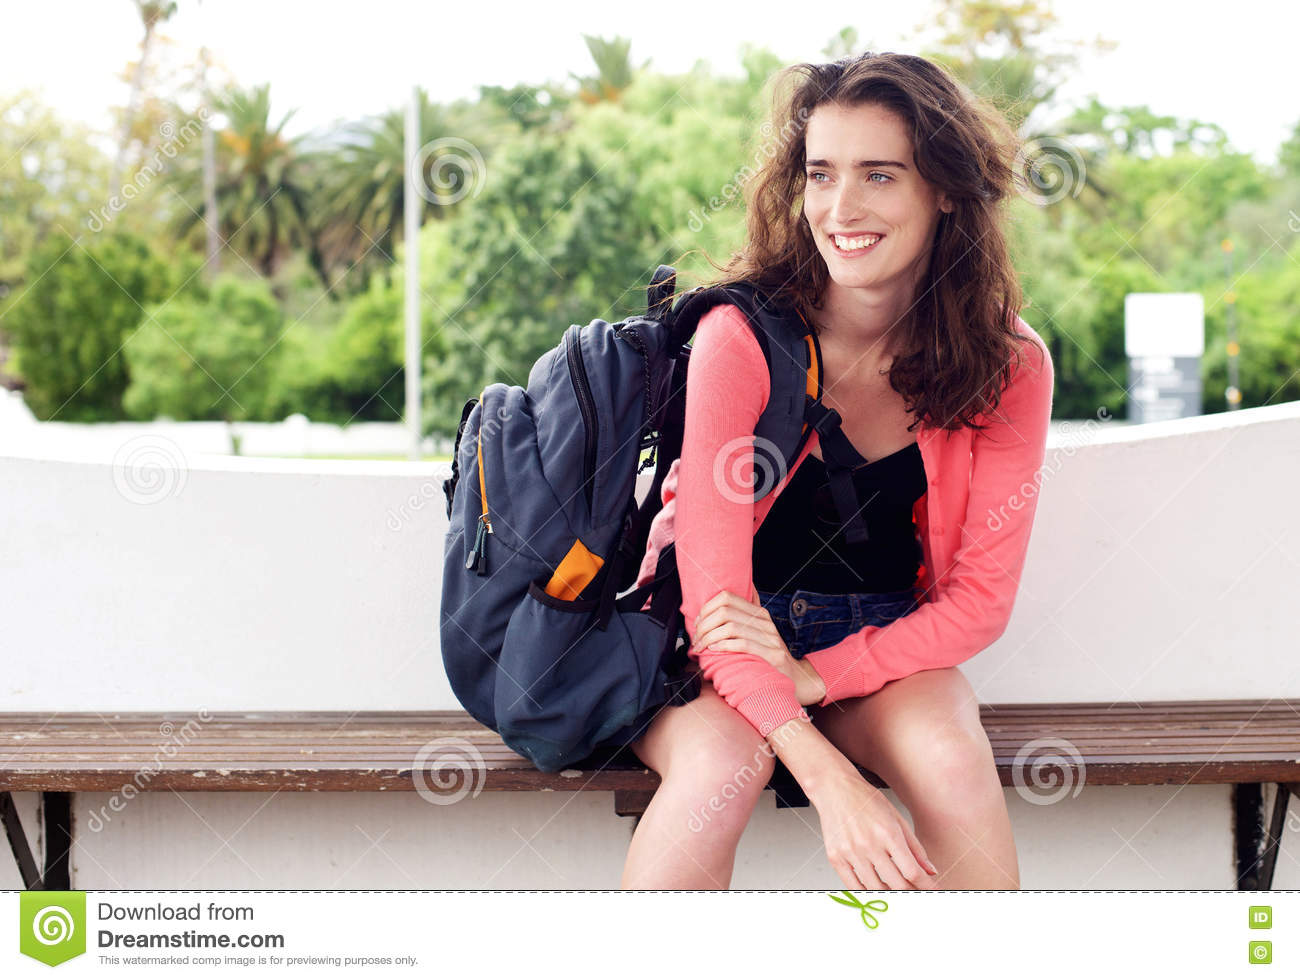 Smiling young woman sitting on a bench waiting with backpack